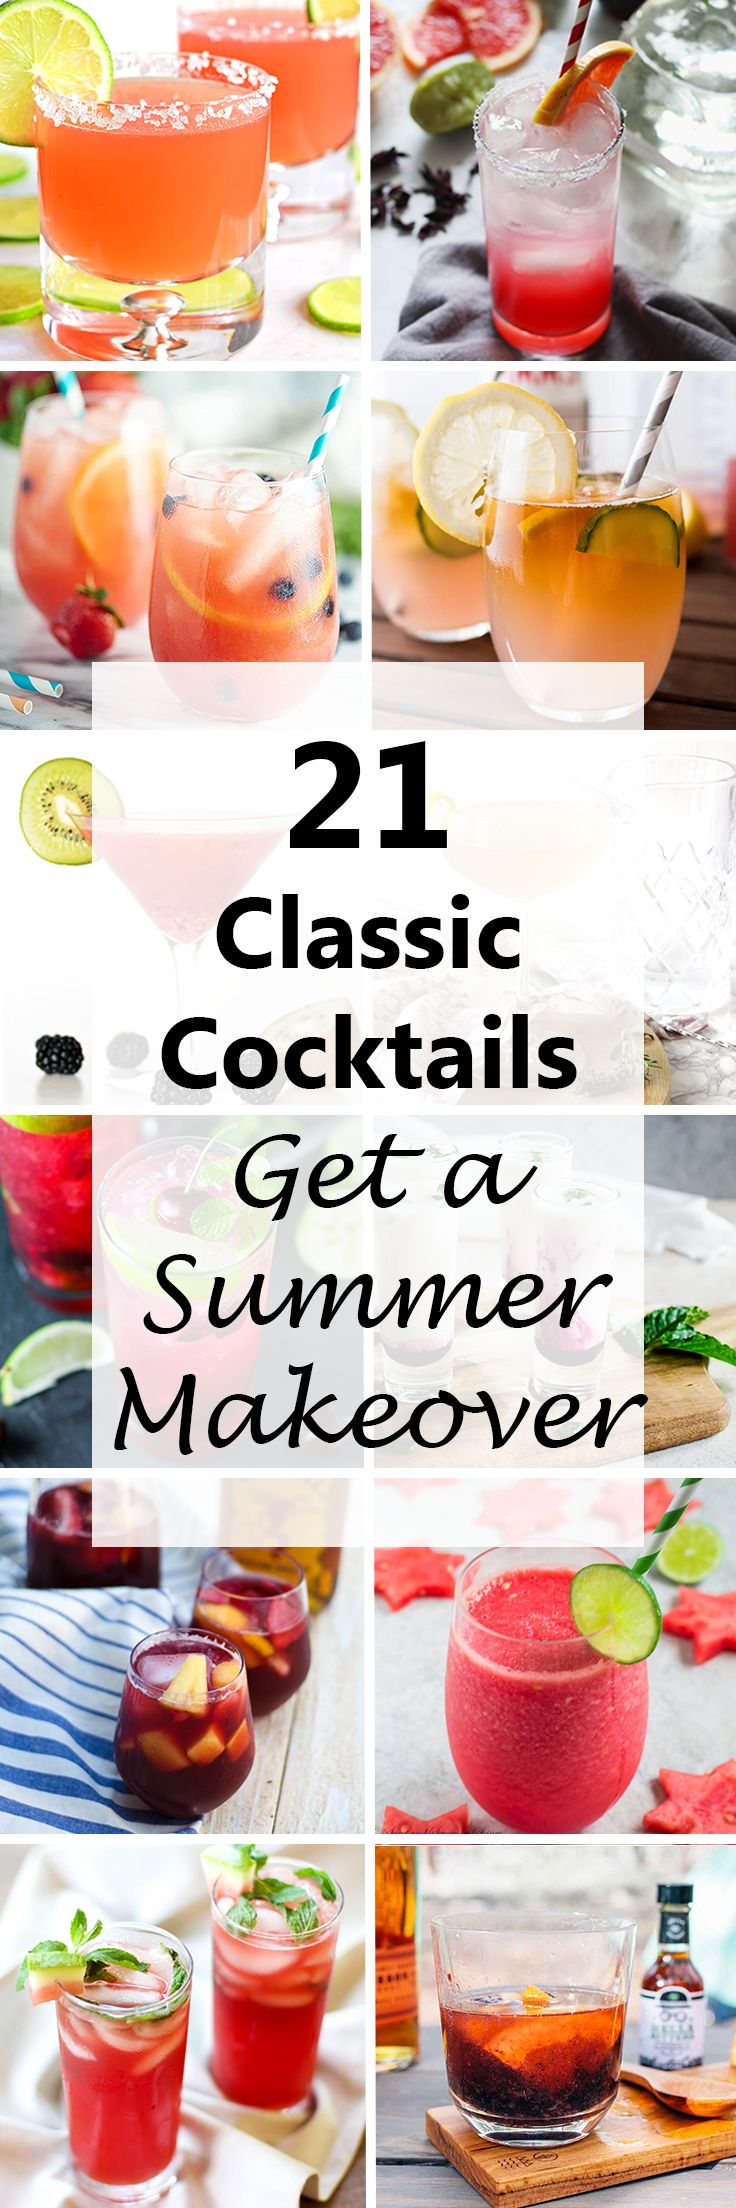 Cool down and get tipsy this summer with one of these delicious twists on classic cocktails.  #cocktails #drinks #recipes #summer